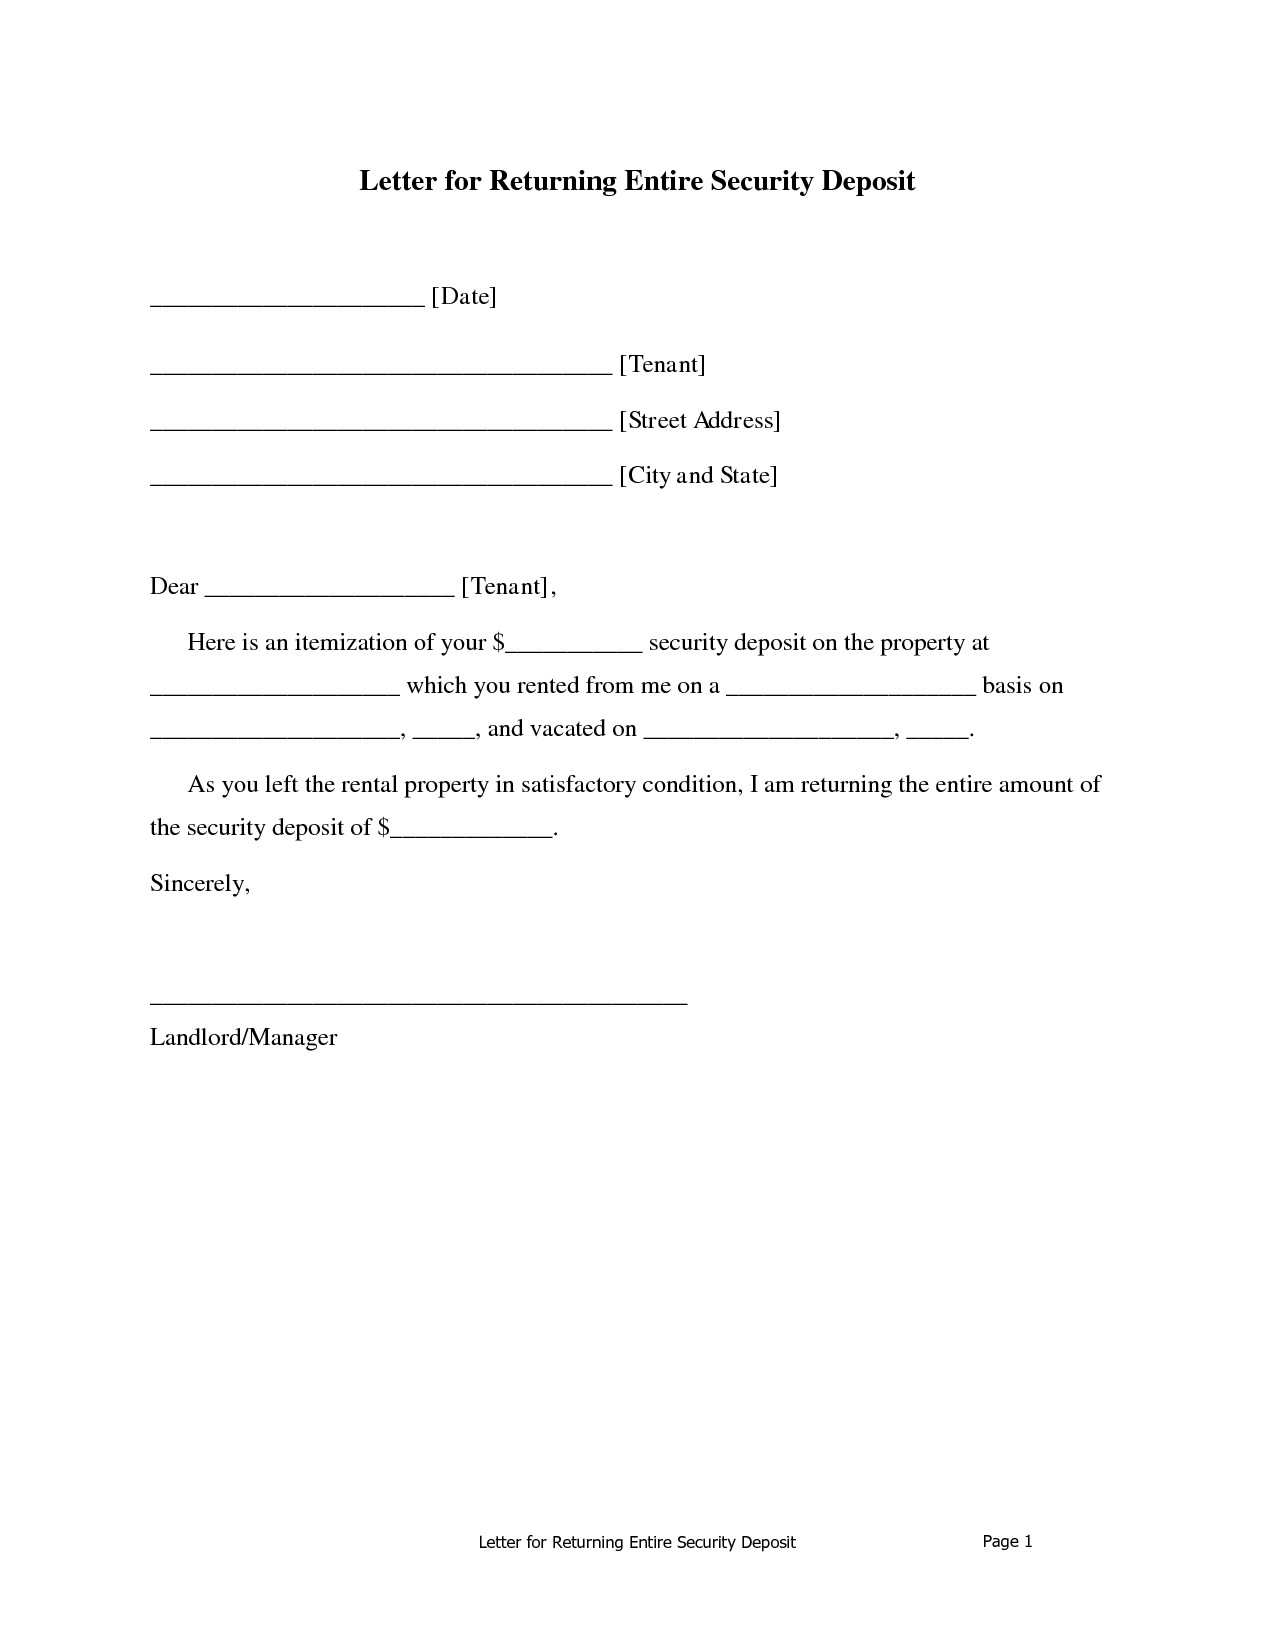 Security Deposit Refund Letter Template - Security Deposit Return Letter Sample Landlord Refund Absolute with